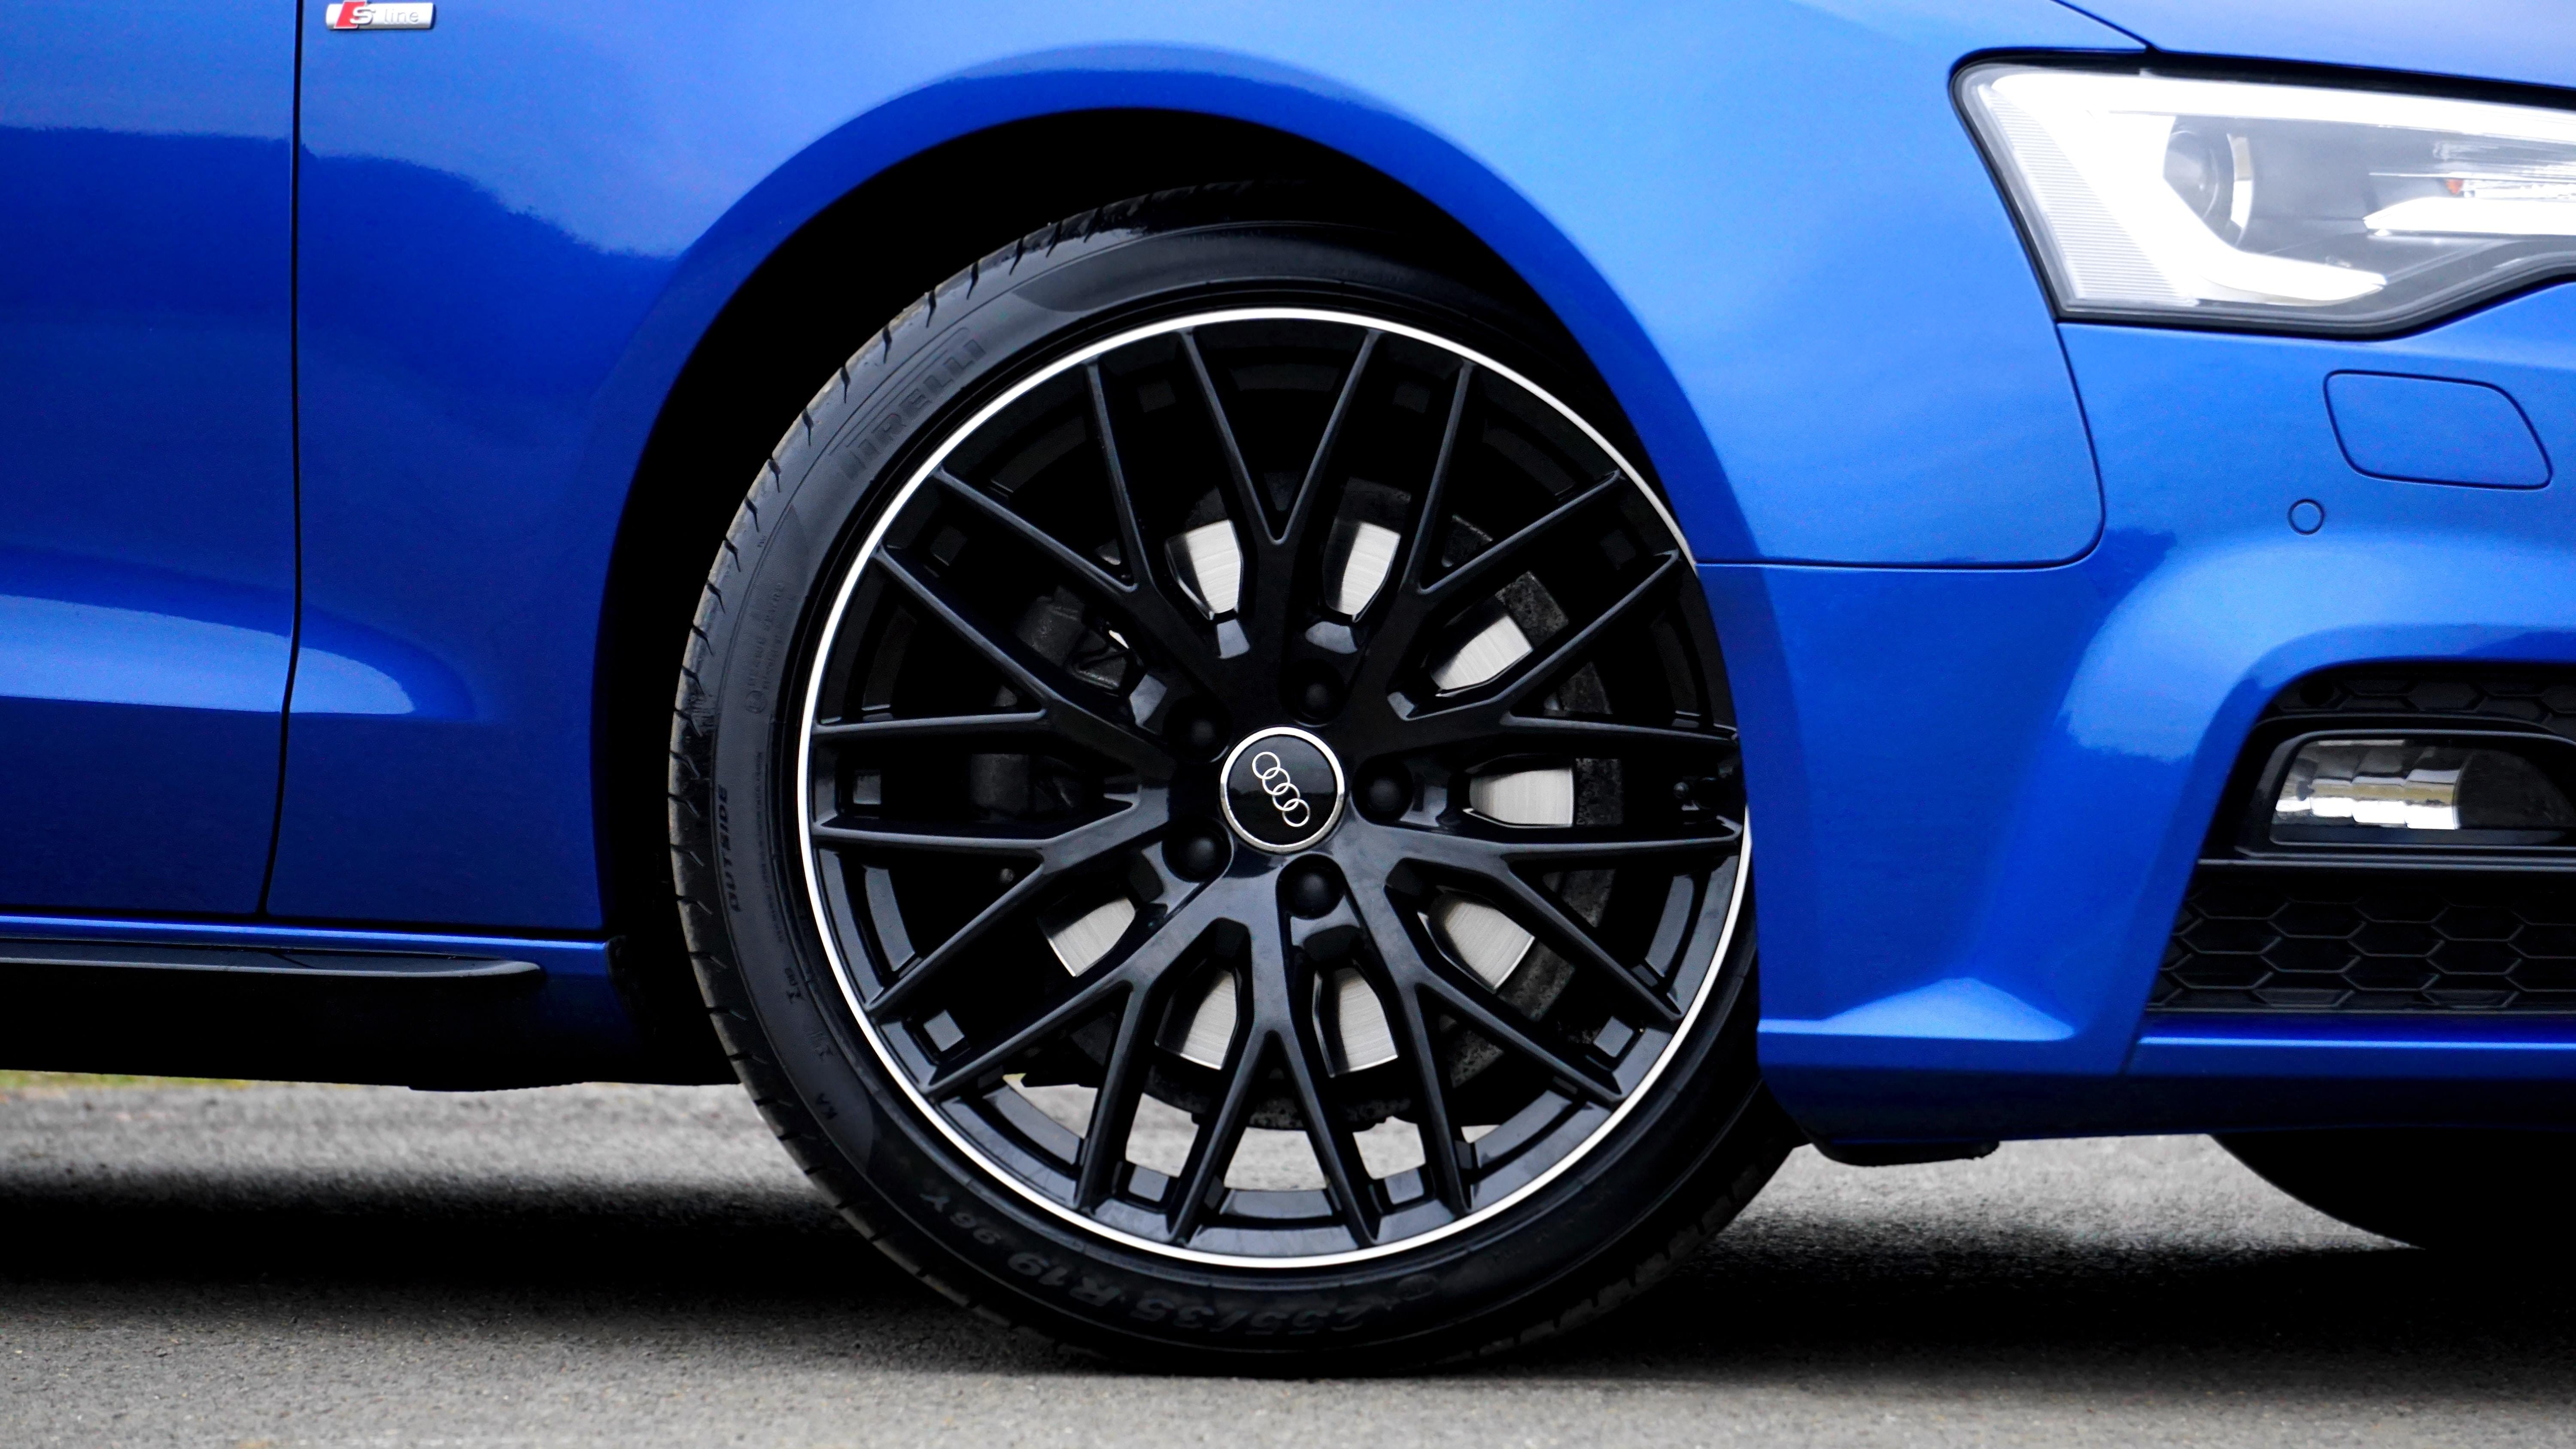 Bill Calling for Tire Change Fee Increase in Calif. Withdrawn